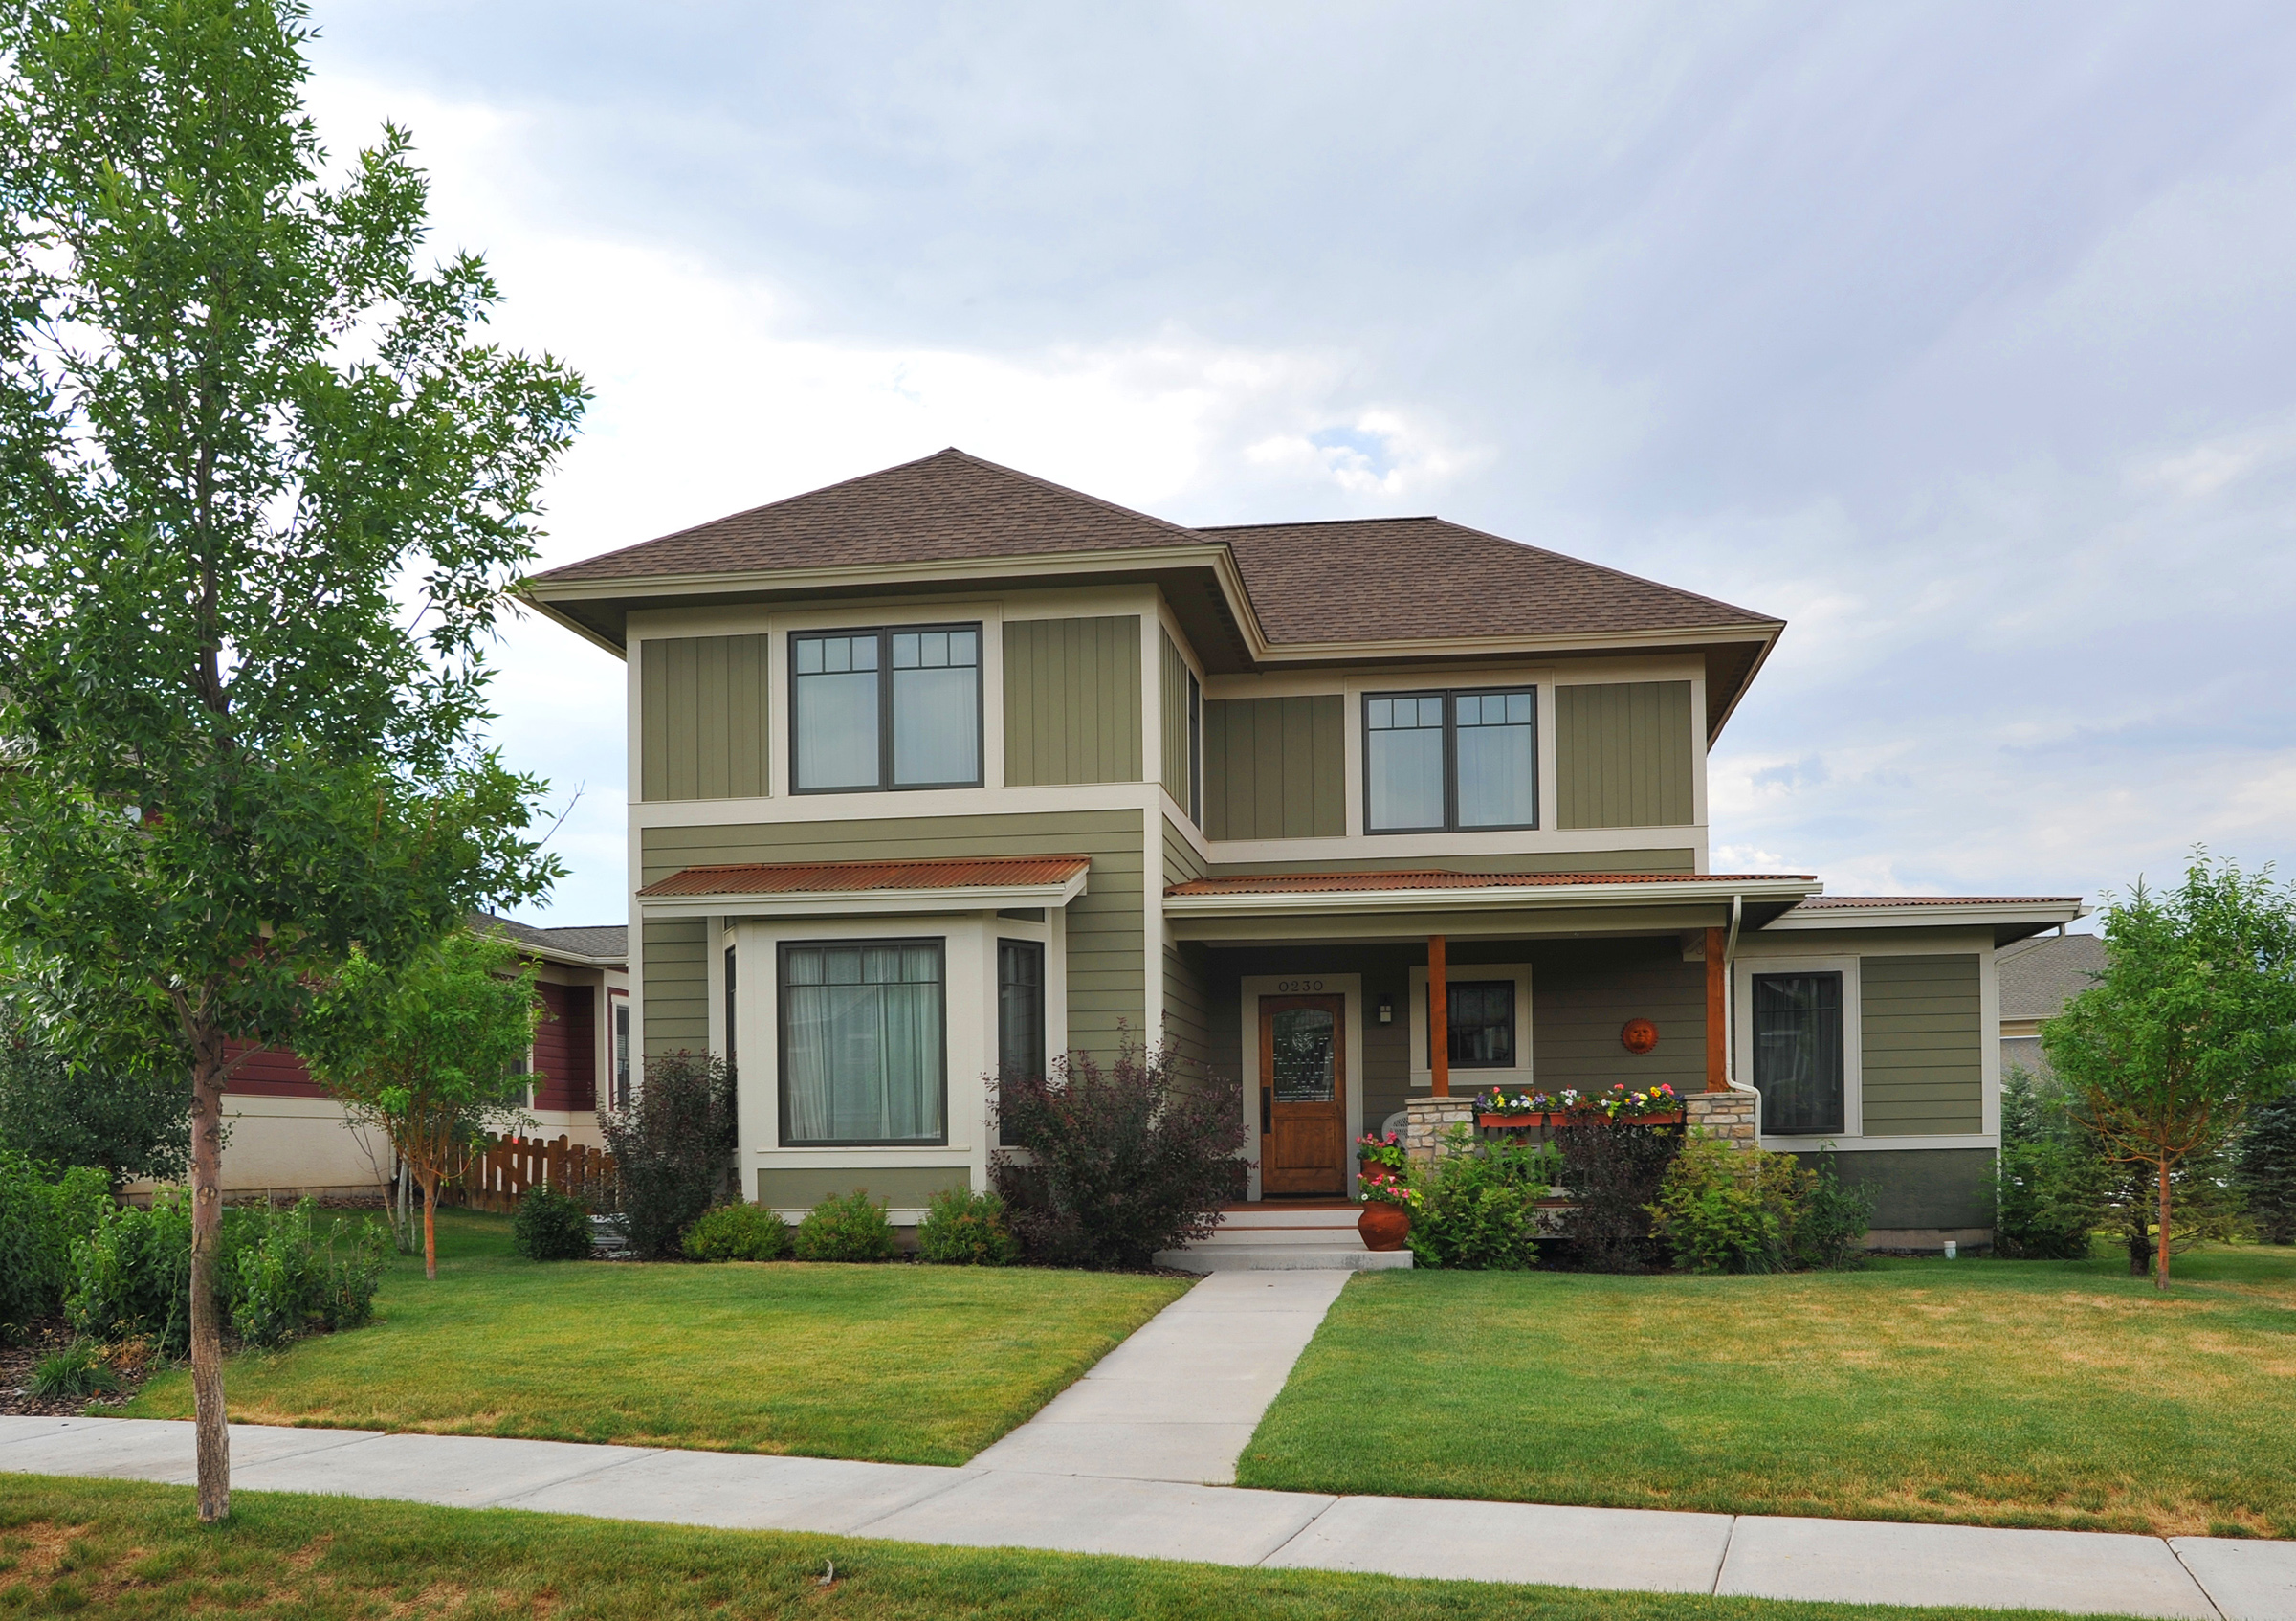 Exterior image of a home at Aidan's Meadow